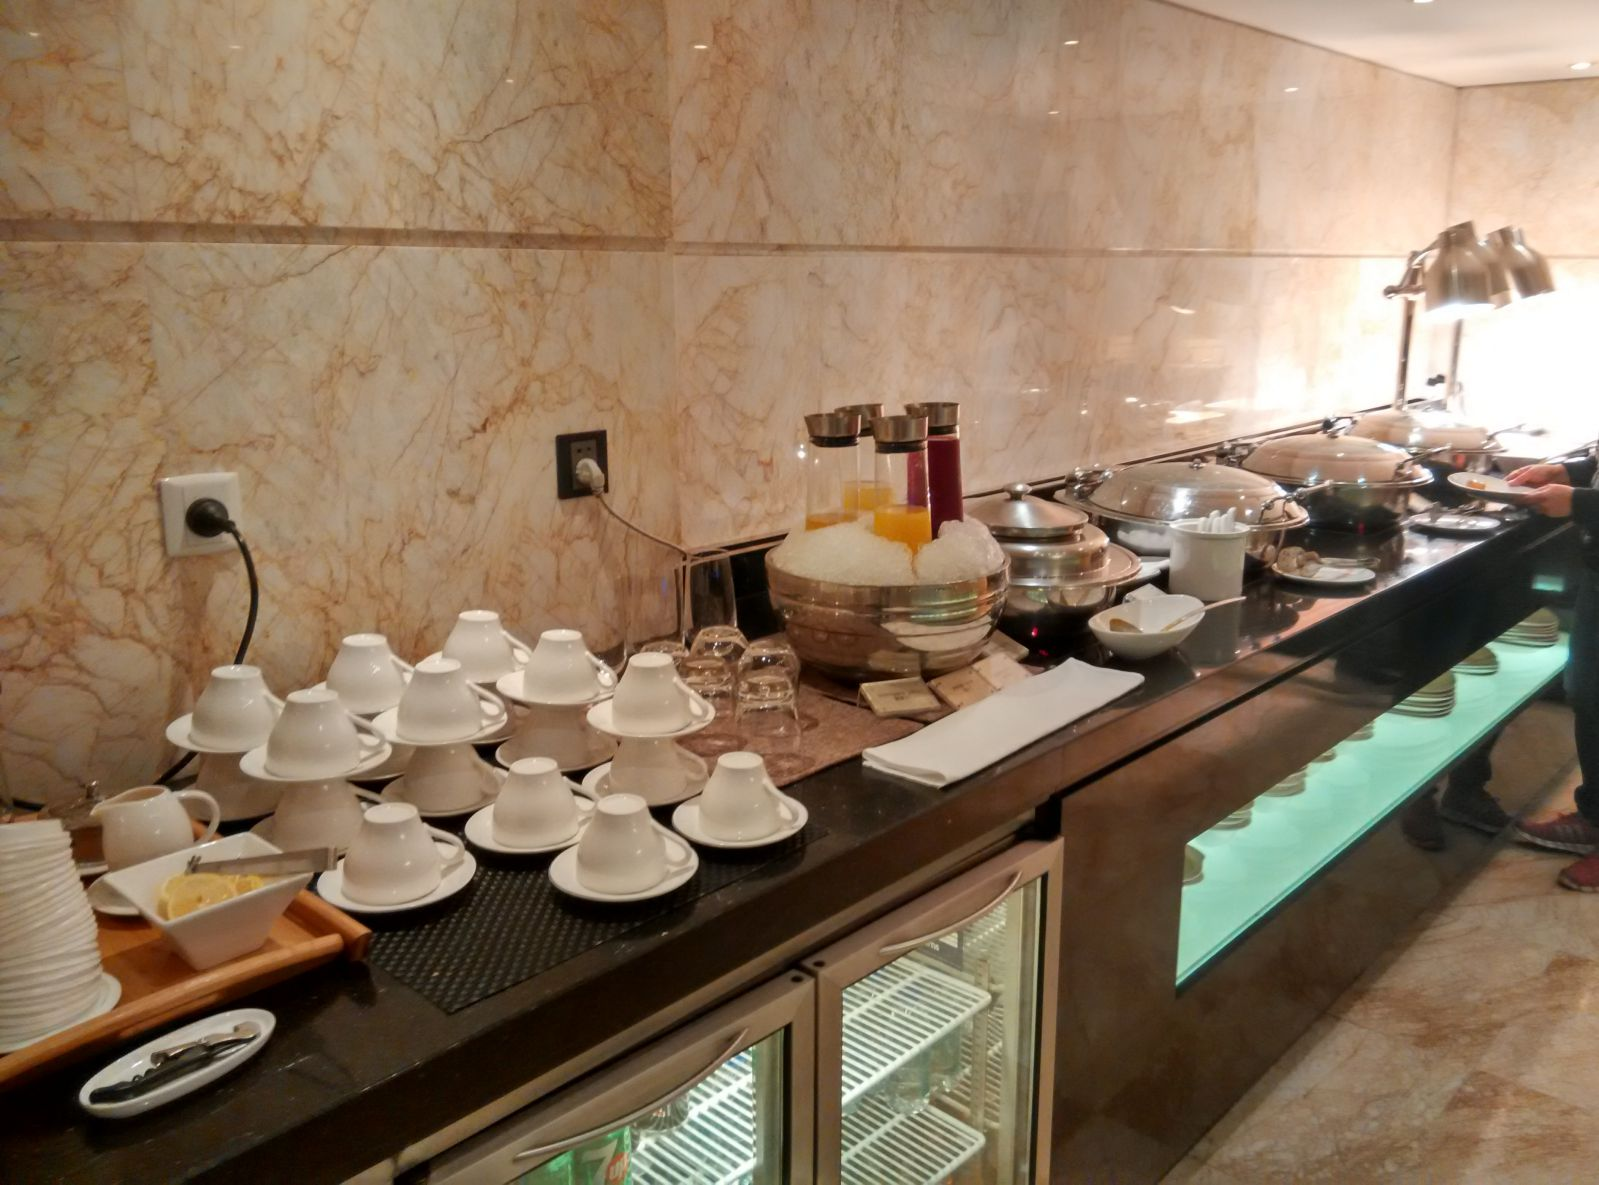 guangzhou-marriott-tianhe-lounge-food-2